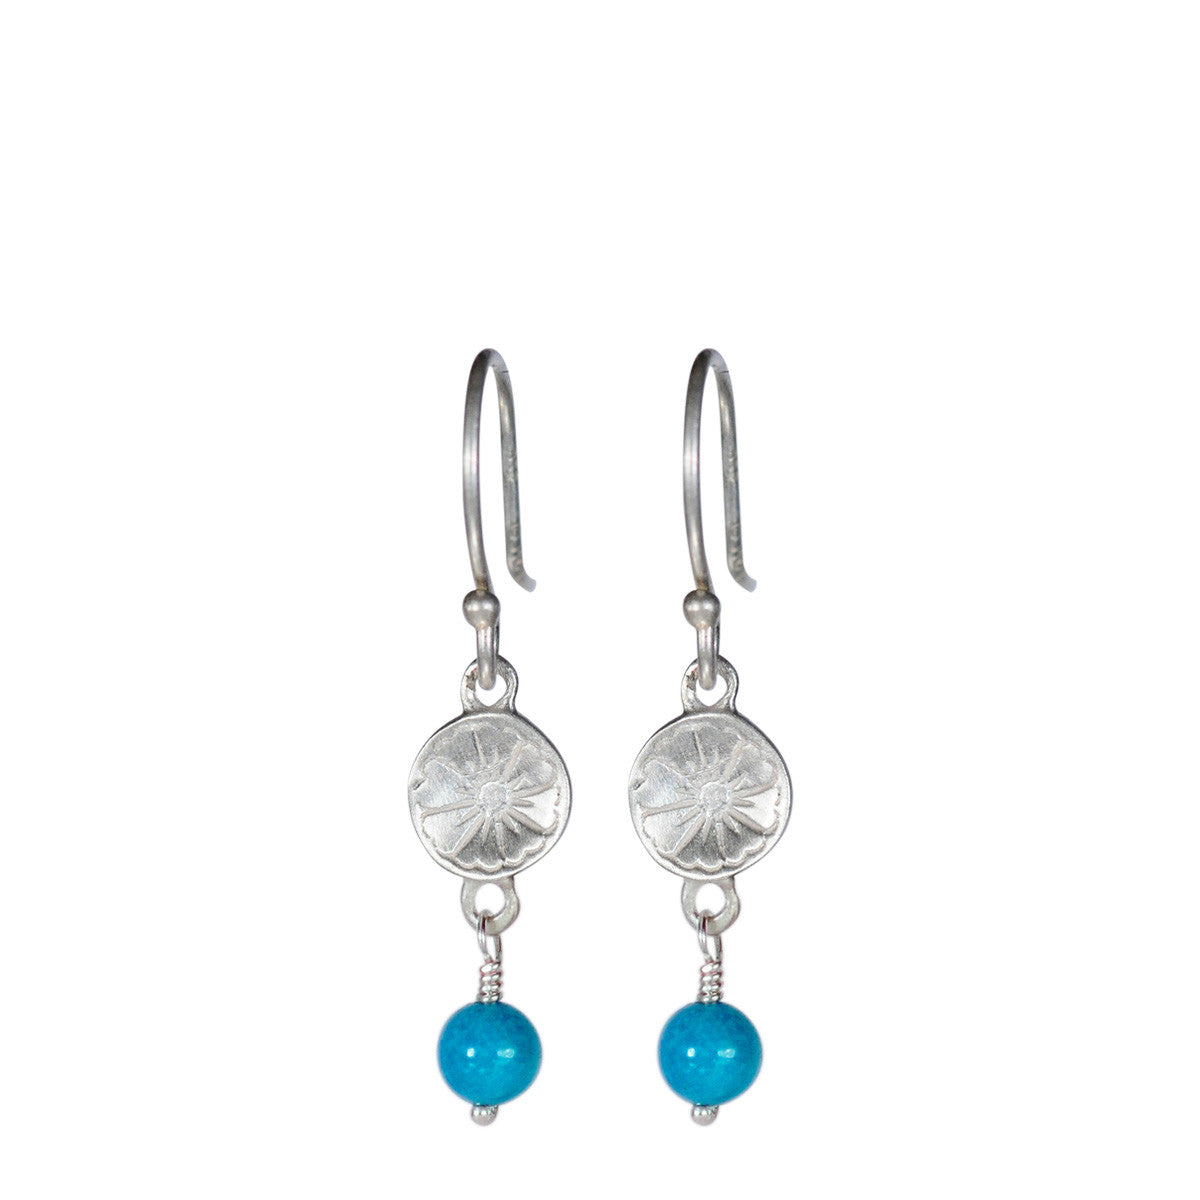 Sterling Silver Small Engraved Flower Earrings with Turquoise Bead